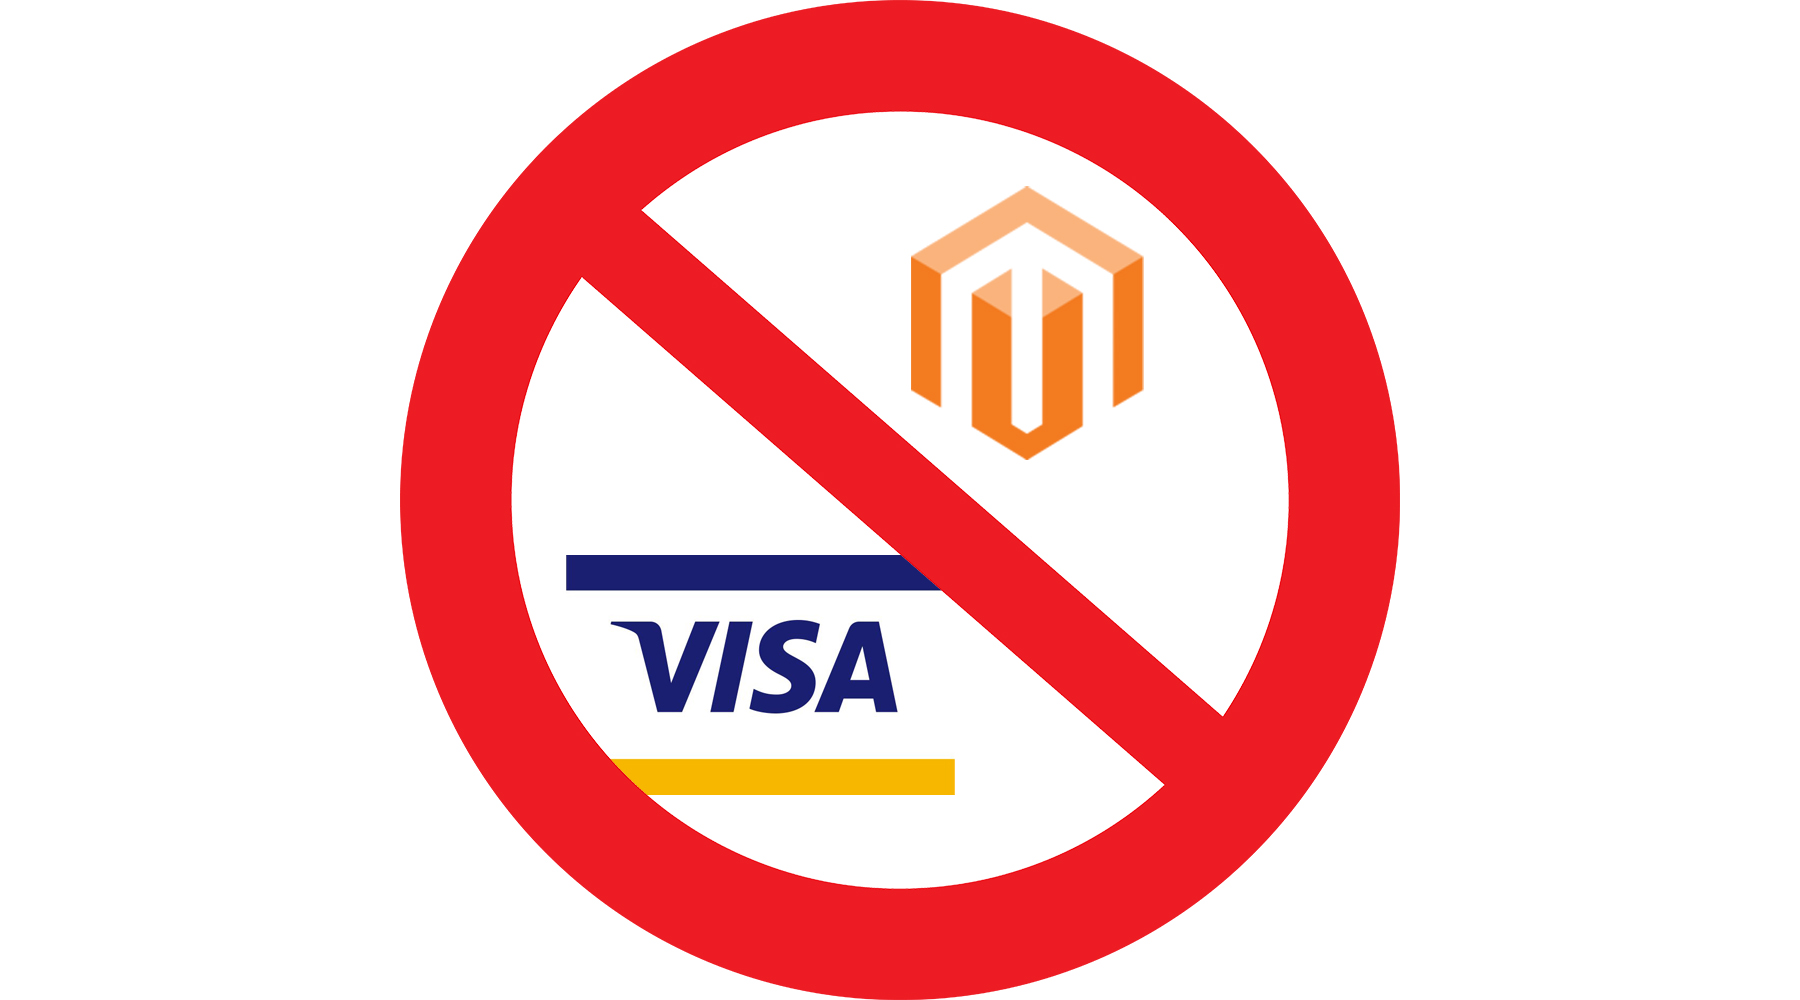 We told you, Magento told you, Now Visa are telling you, UPGRADE or SWITCH!